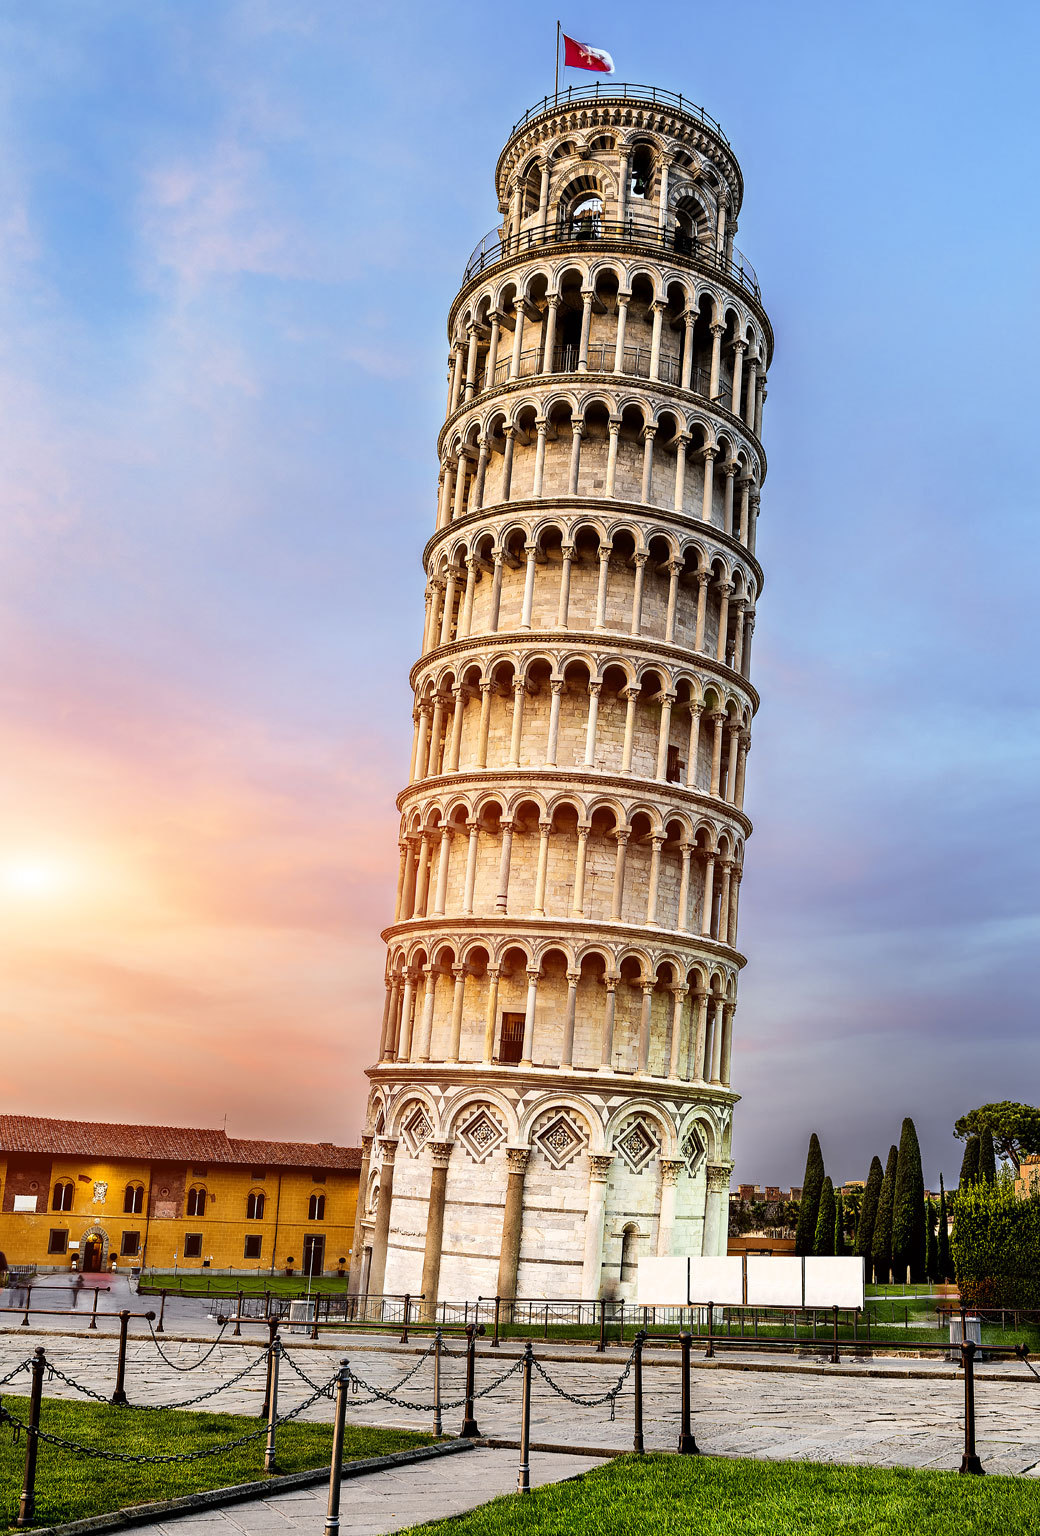 The Leaning Tower Of Pisa 1040x1536   pixel 4262 kbytes images 1040x1536